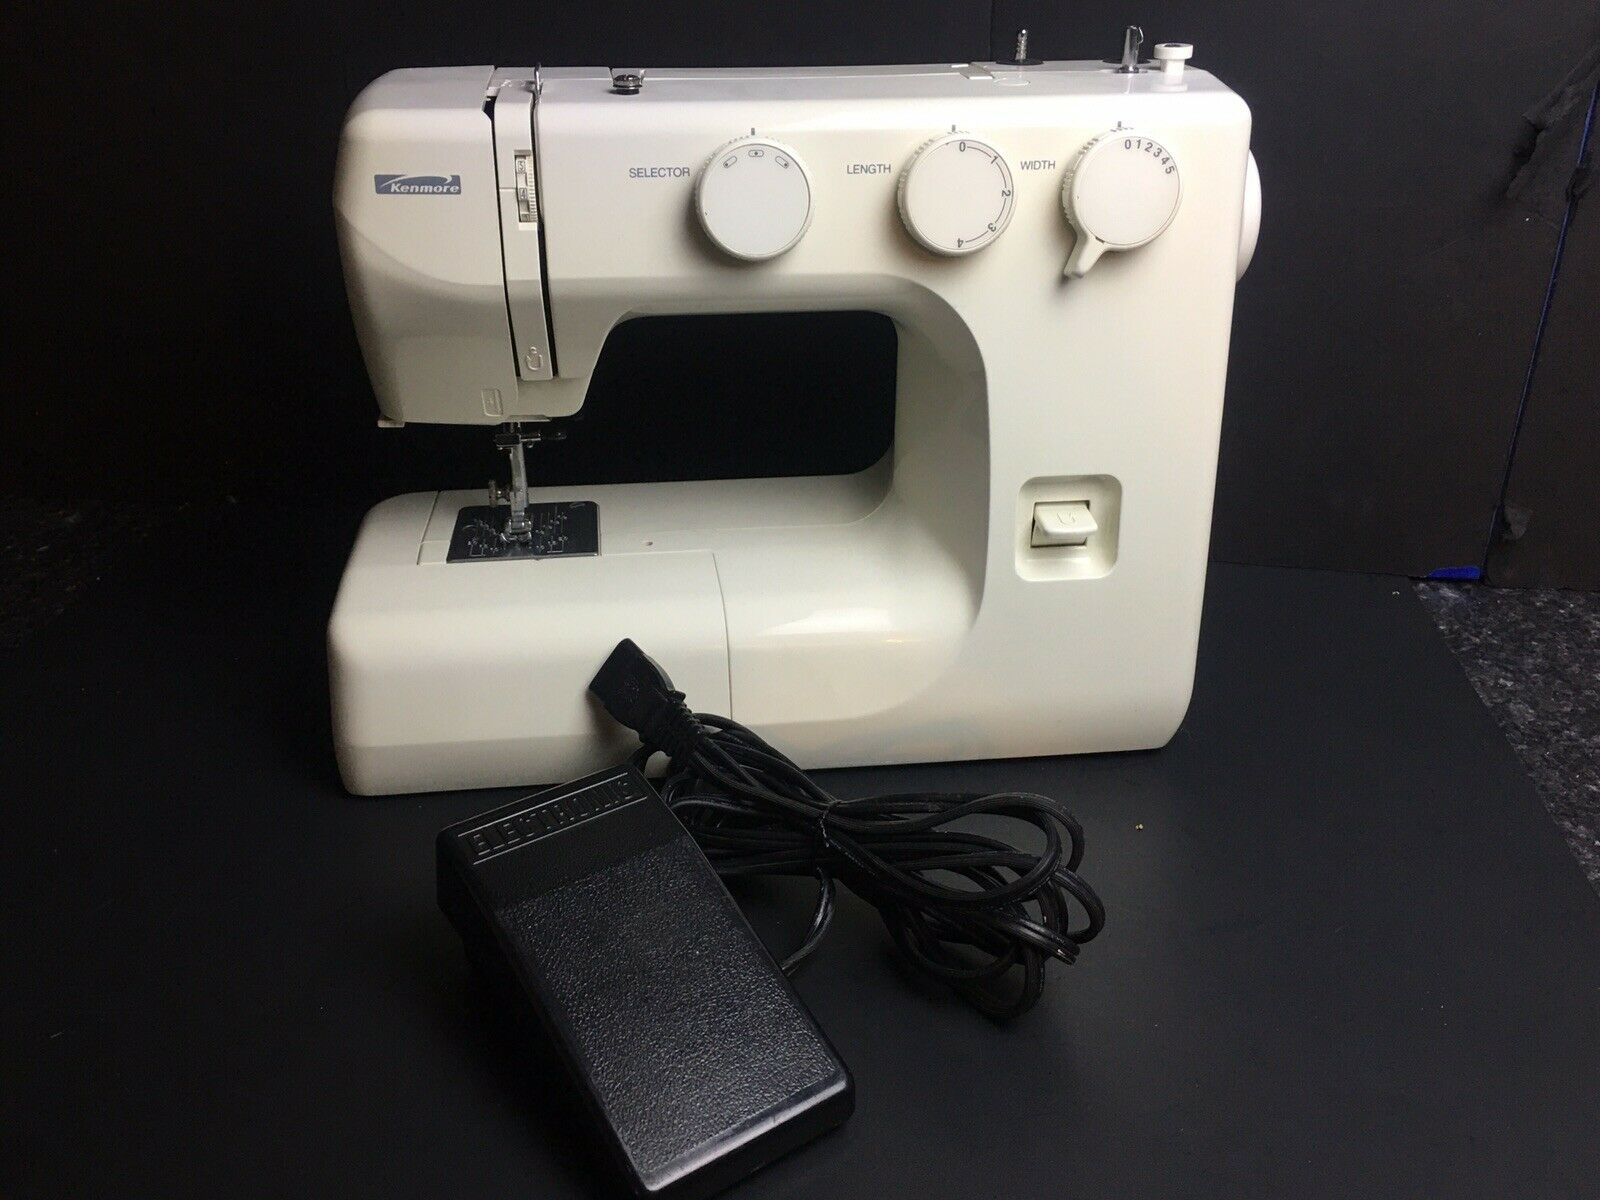 s l1600 - Kenmore Sewing Machine #:385 12102990 -w/Foot Petal -No Attachments -Works Great